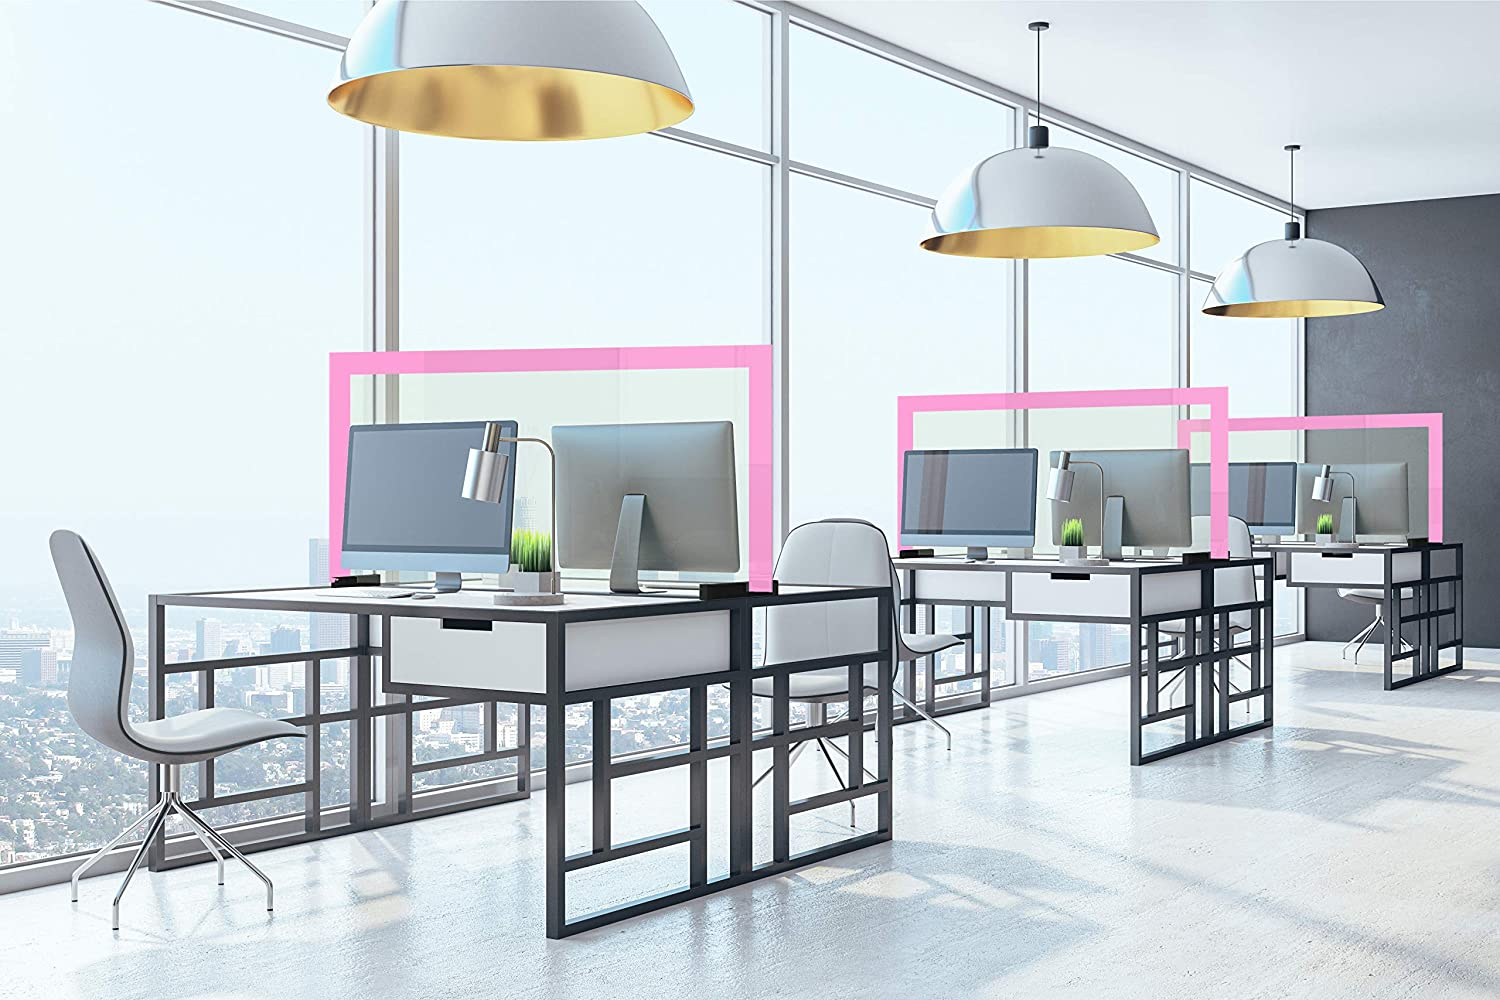 coworking Spaces counters Anti-Contagion Separator for desks in Schools Protection Barrier - Protection screenwith Steel Edges Offices etc